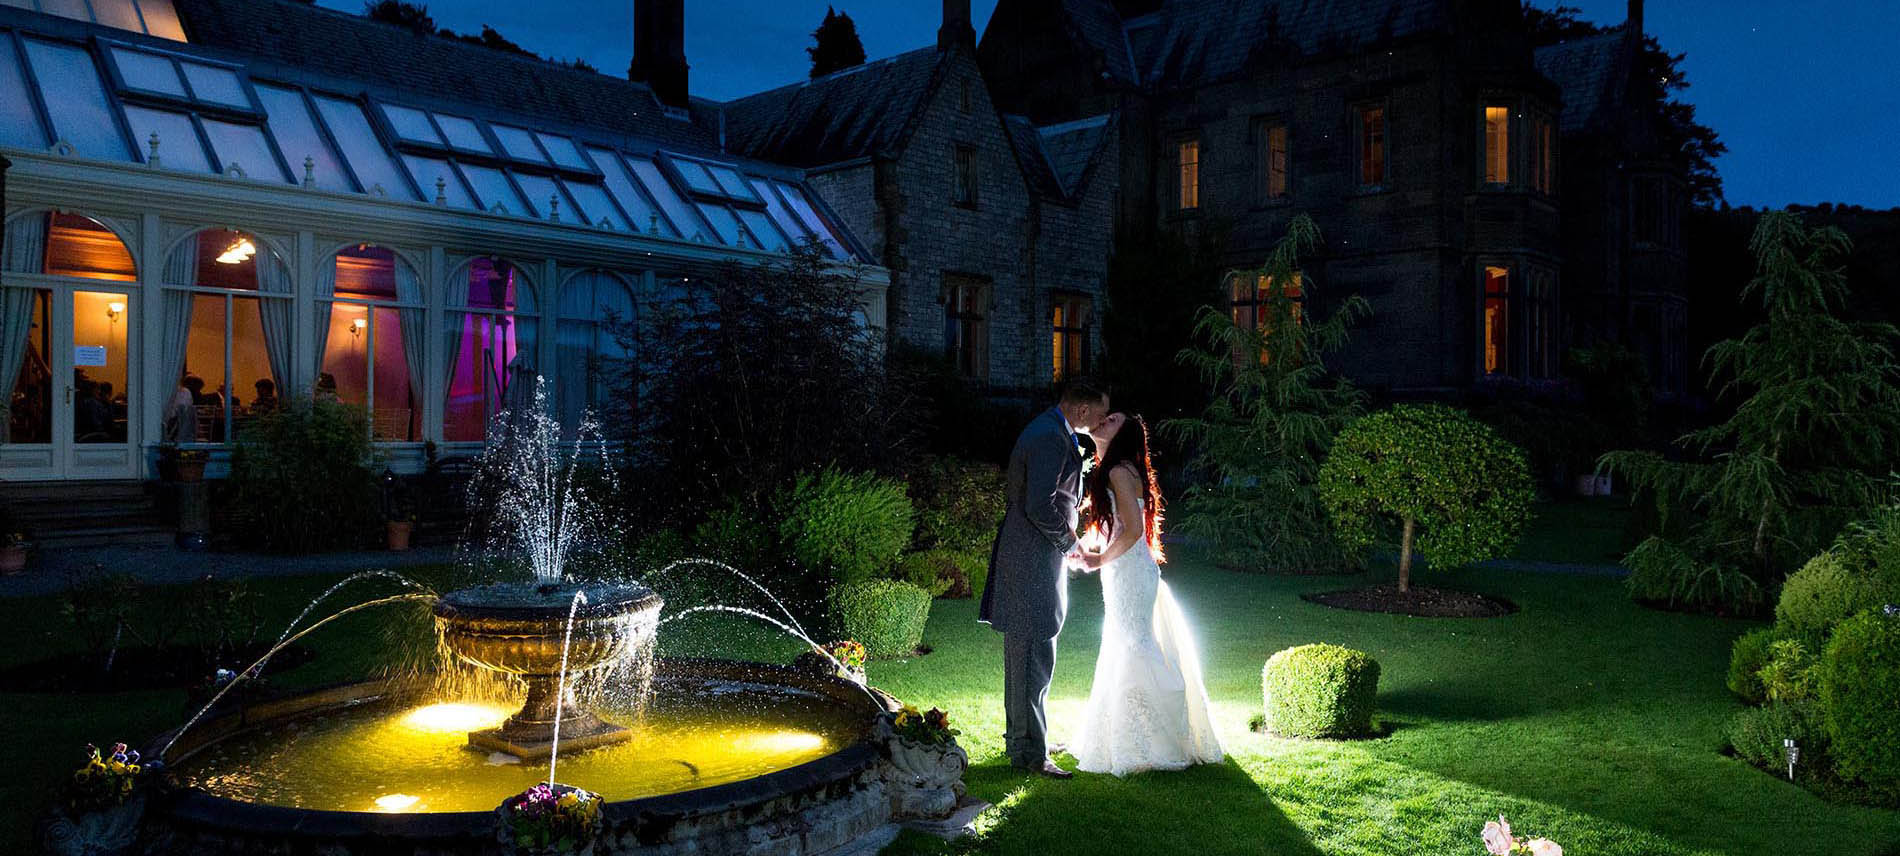 creative wedding photography in kent